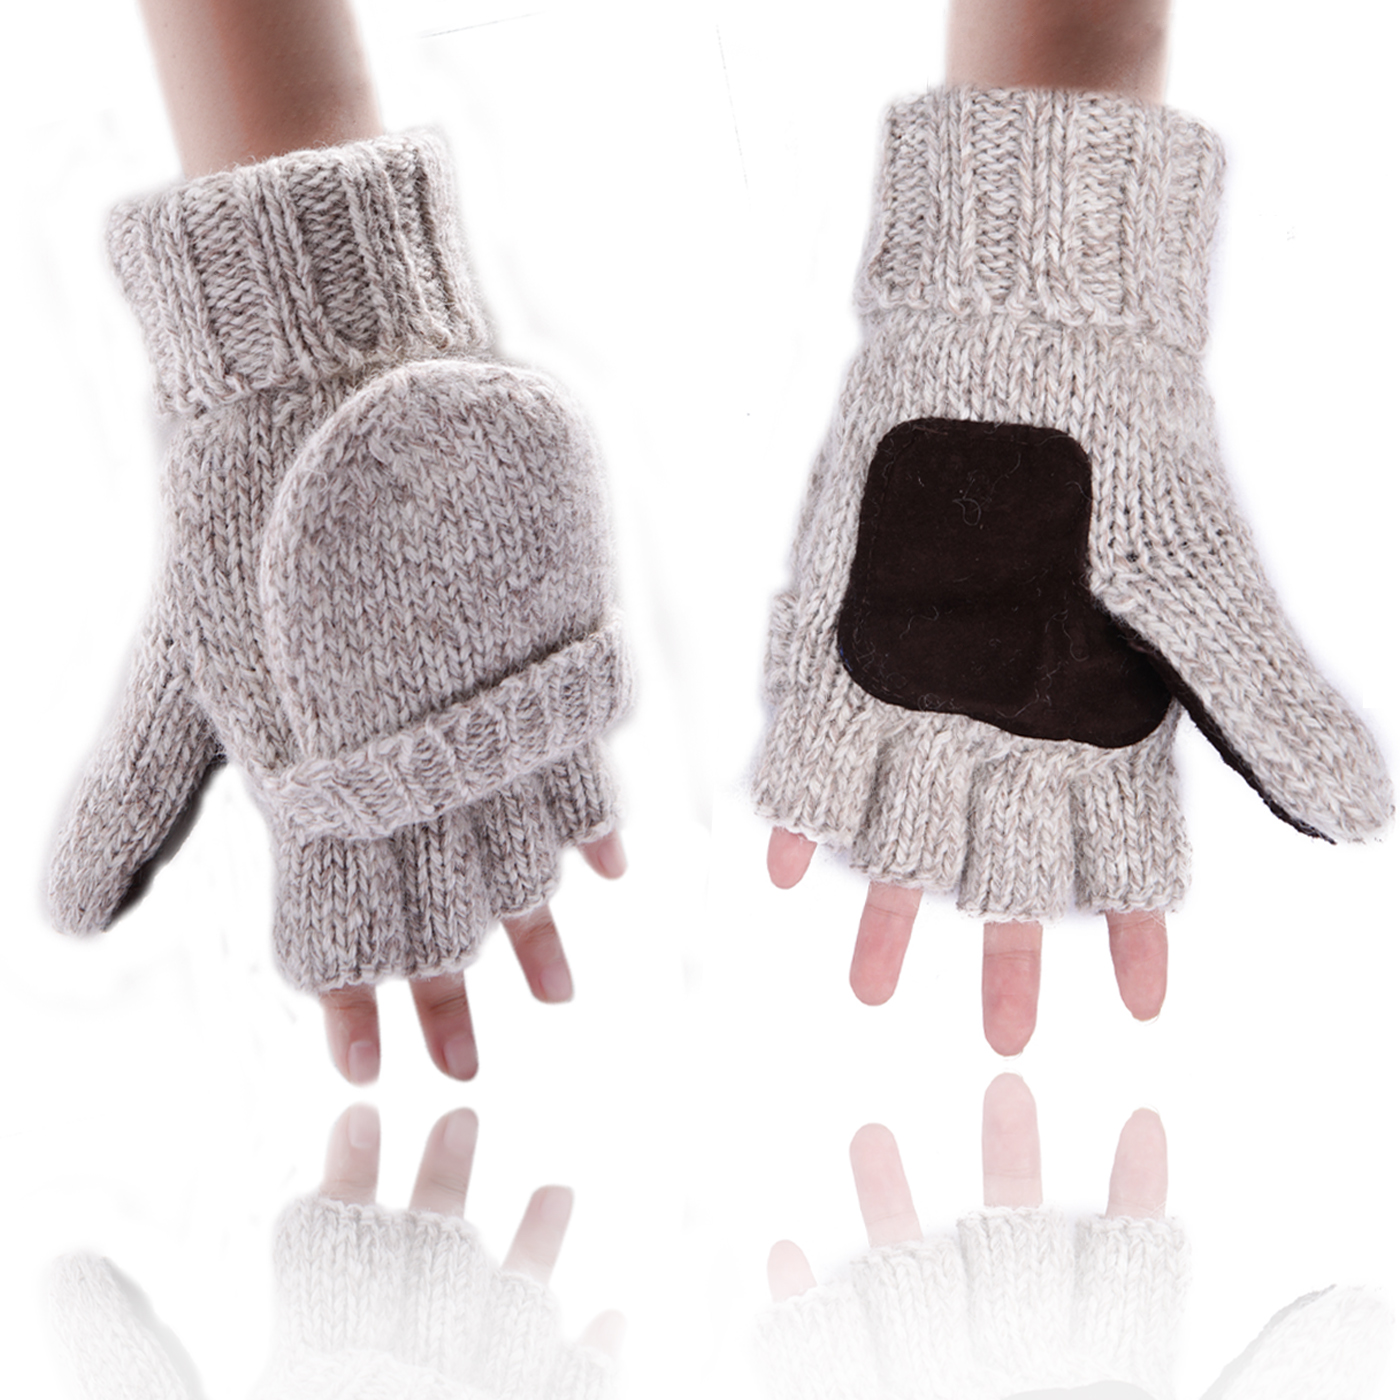 HDE Fingerless Winter Gloves Flipover Insulated Thermal Knit Texting Mittens (Gray) by Winter Gloves